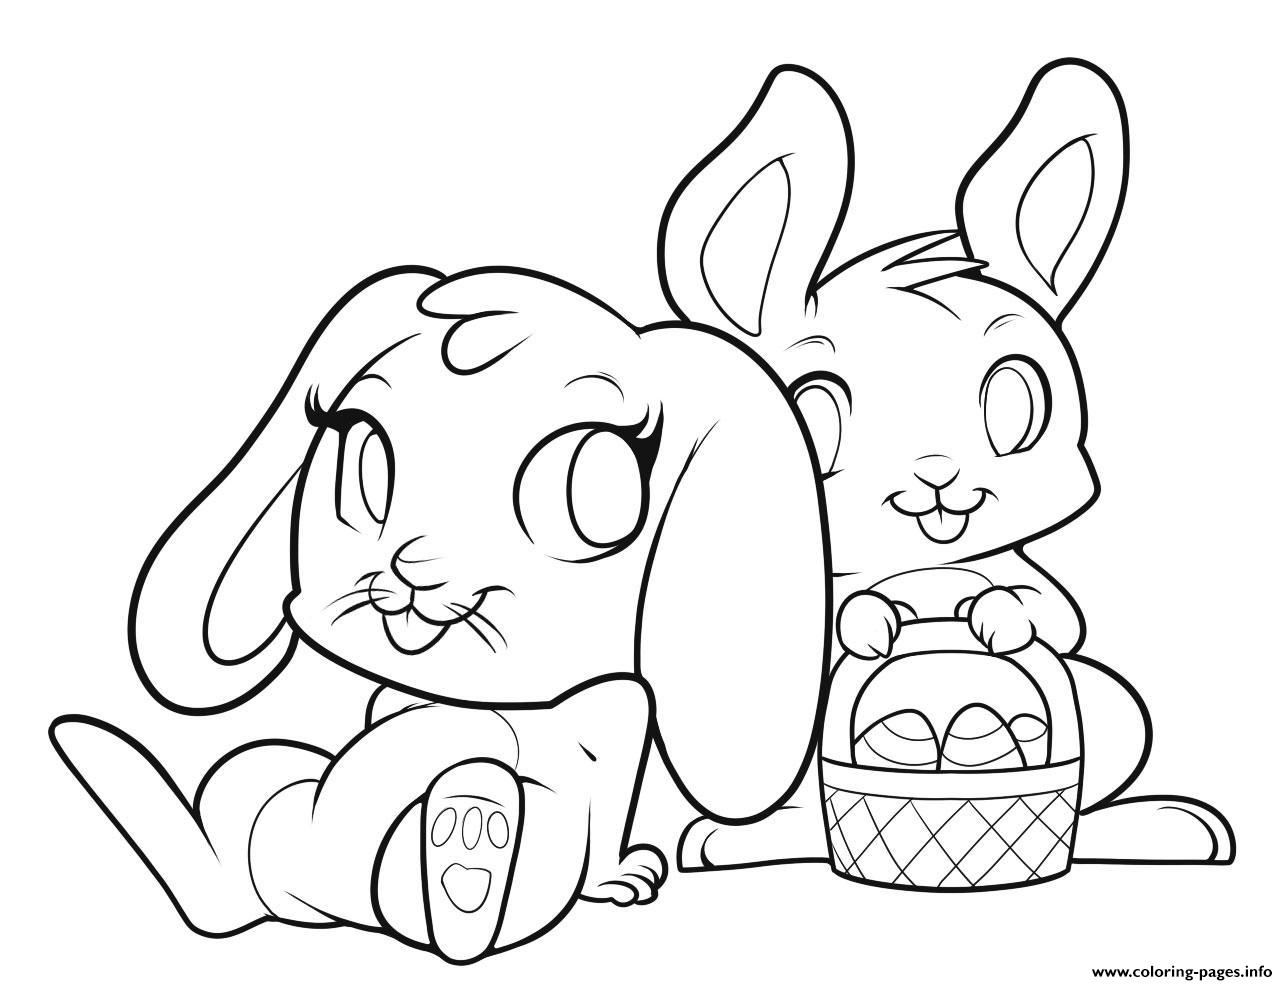 Easter Bunnies Cute Bunny Coloring Pages Printable